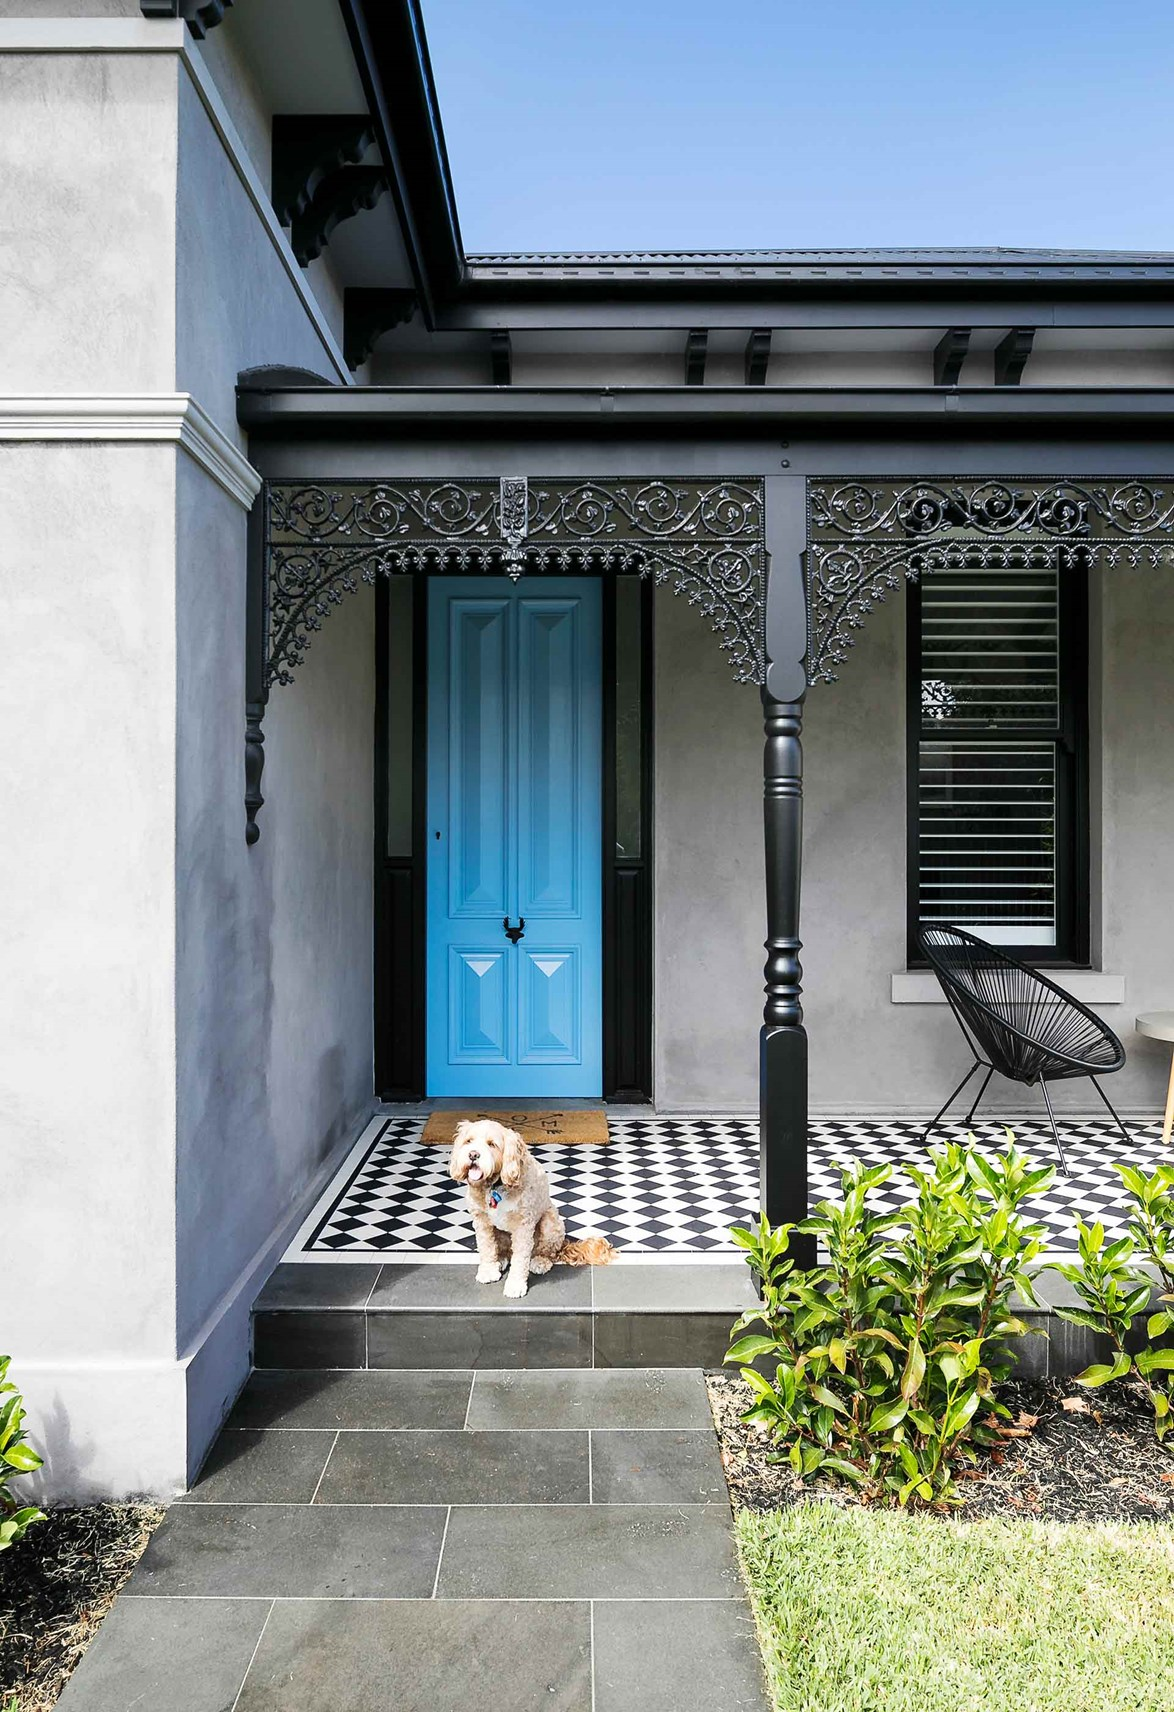 """A vibrant blue front door and patterned monochrome floor tiles add a contemporary touch to the facade of this [restored Victorian home](https://www.homestolove.com.au/century-old-home-renovation-elstenwick-19556